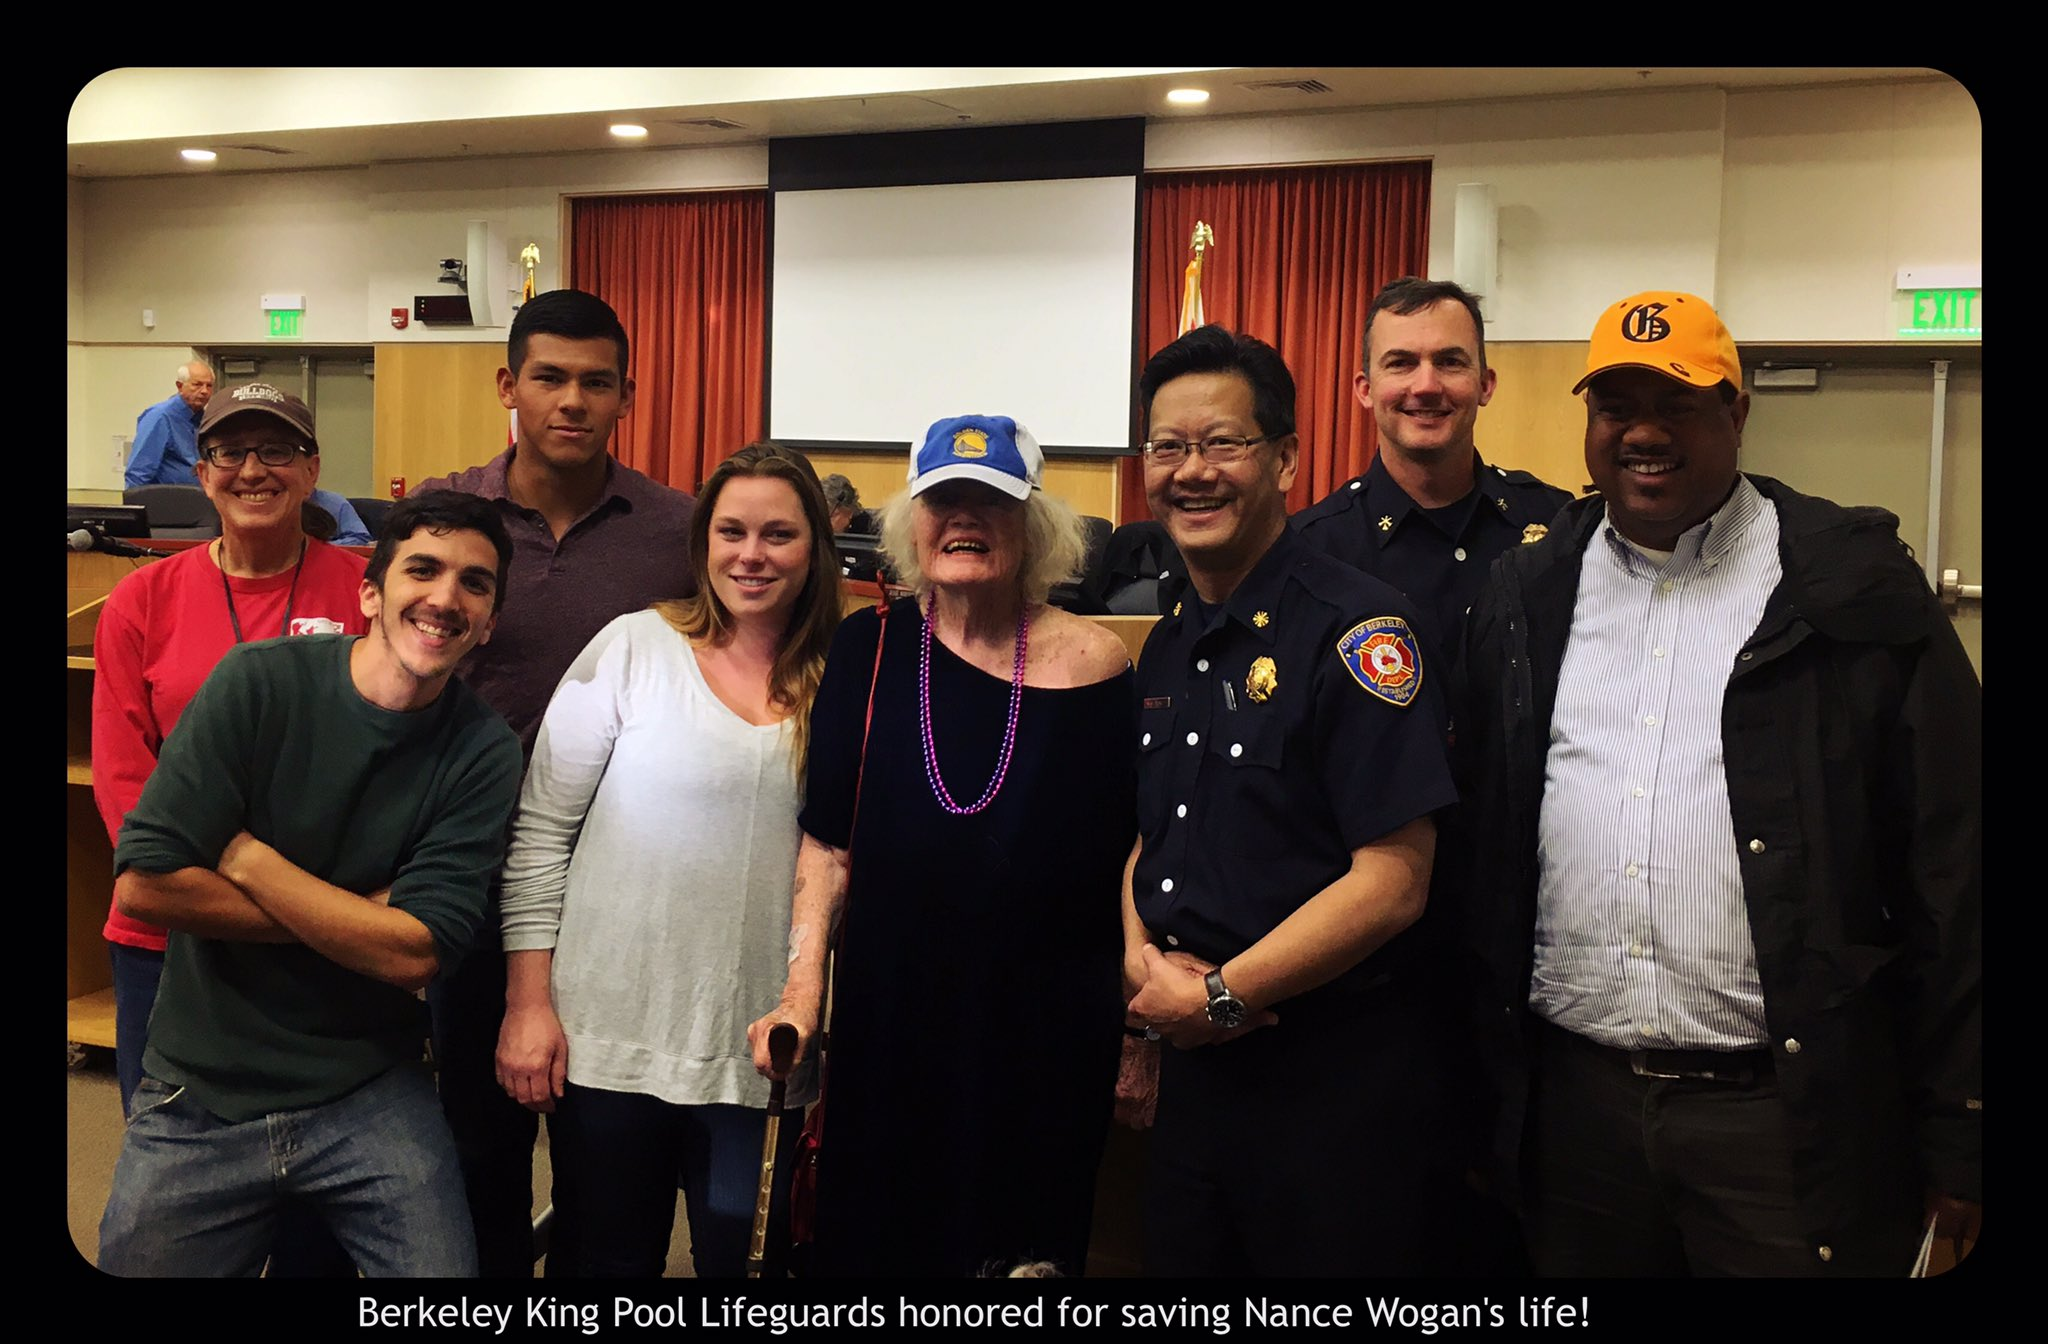 Berkeley City Council awarded King Pool staff for saving my mother's life #AED on 12/11/15 !#aquamates #Berkeley https://t.co/MgECqLbOre